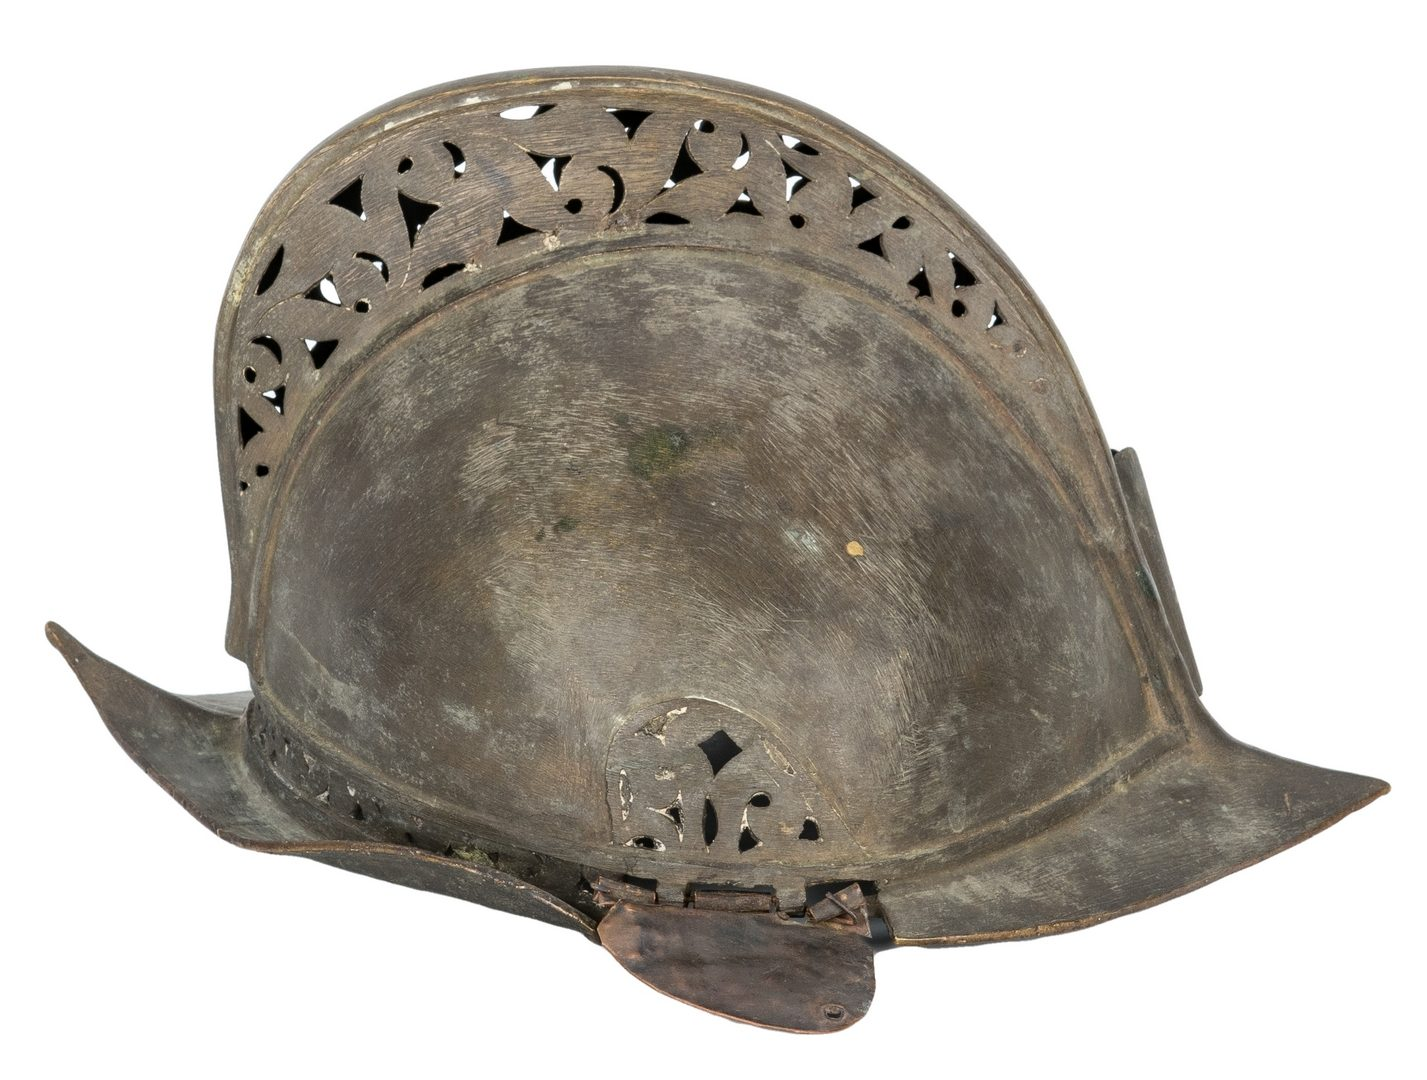 Lot 381: 18th Century Moro Burgonet Helmet